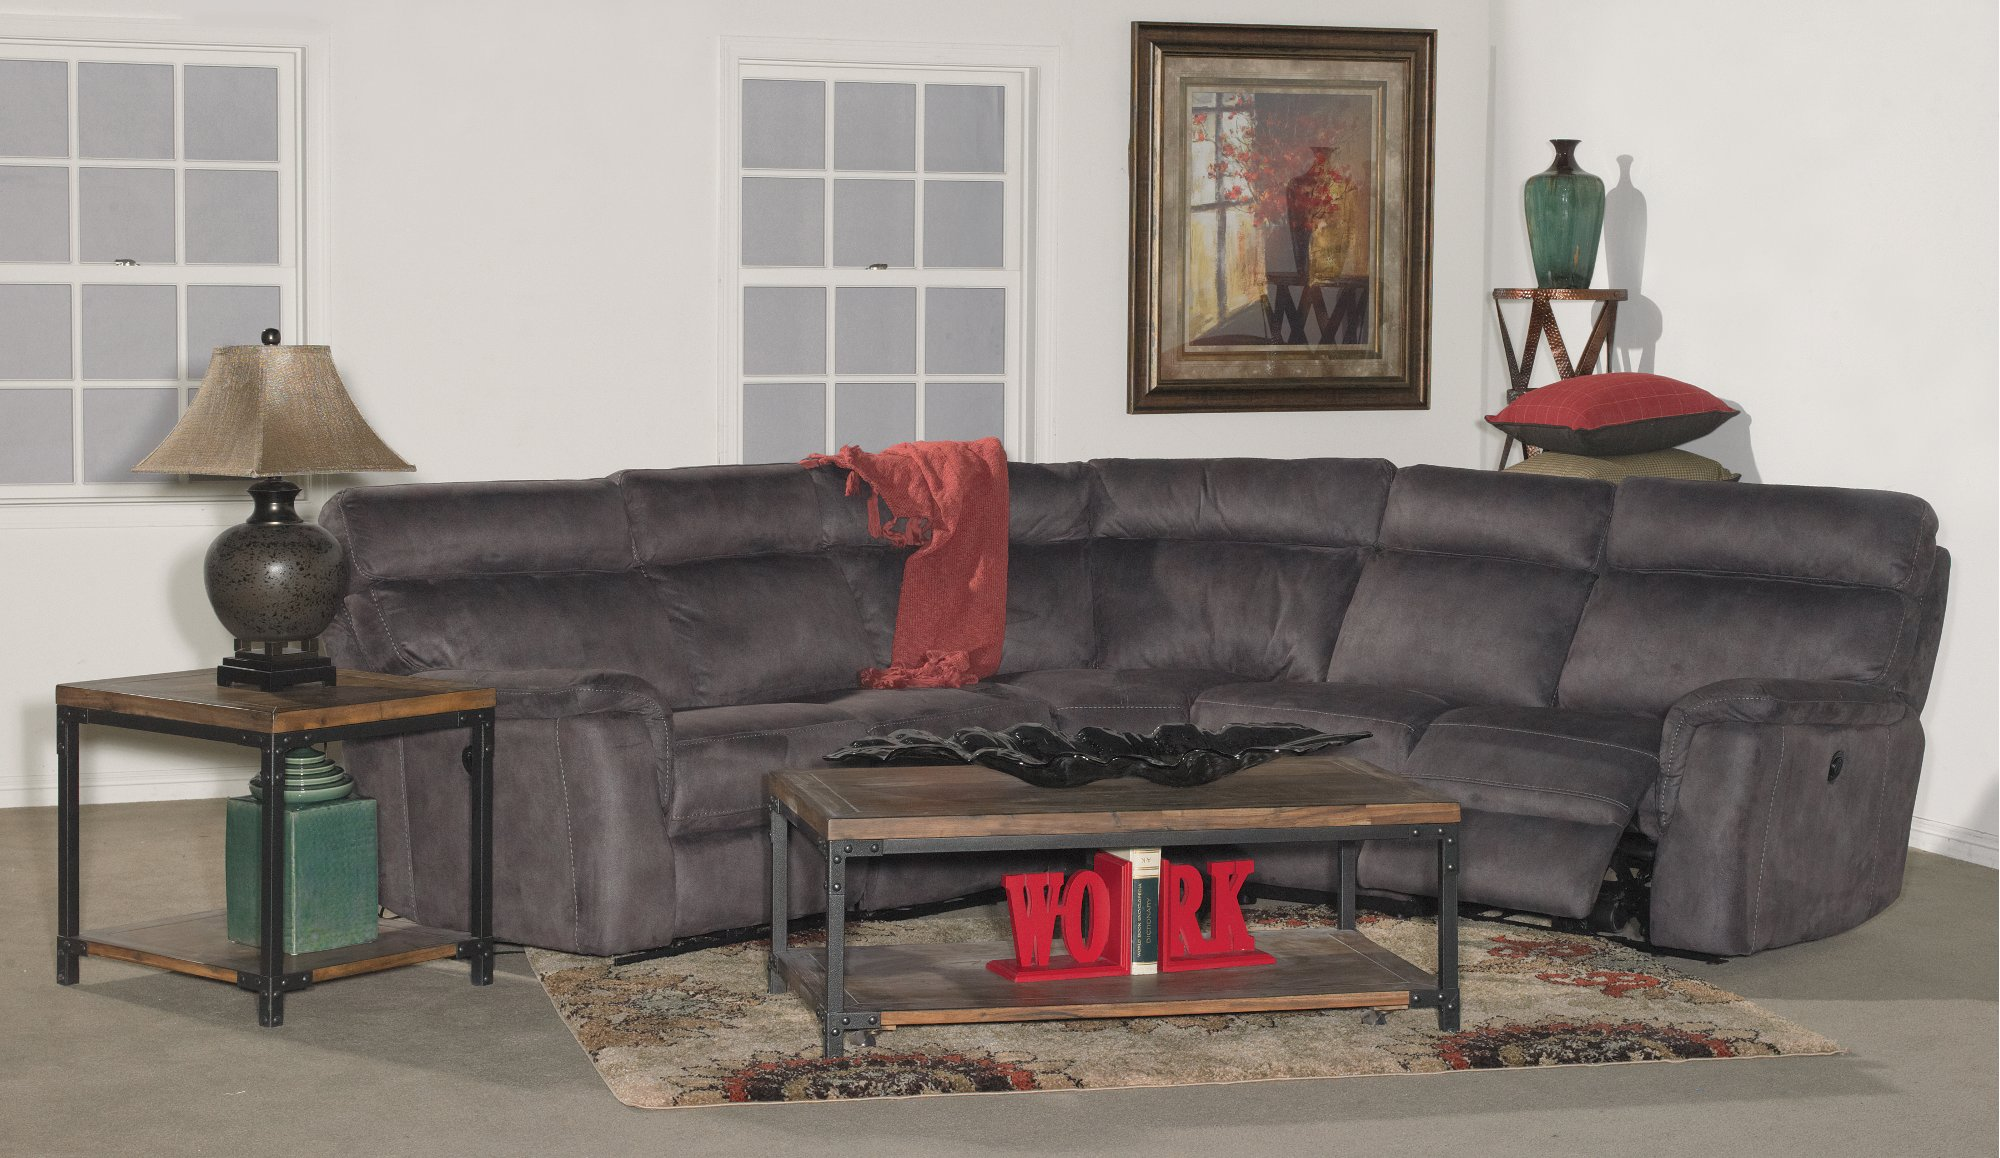 furniture piece reclining jsp gray rcwilley power maci room living rc view fabric willey chairs sectional recliners